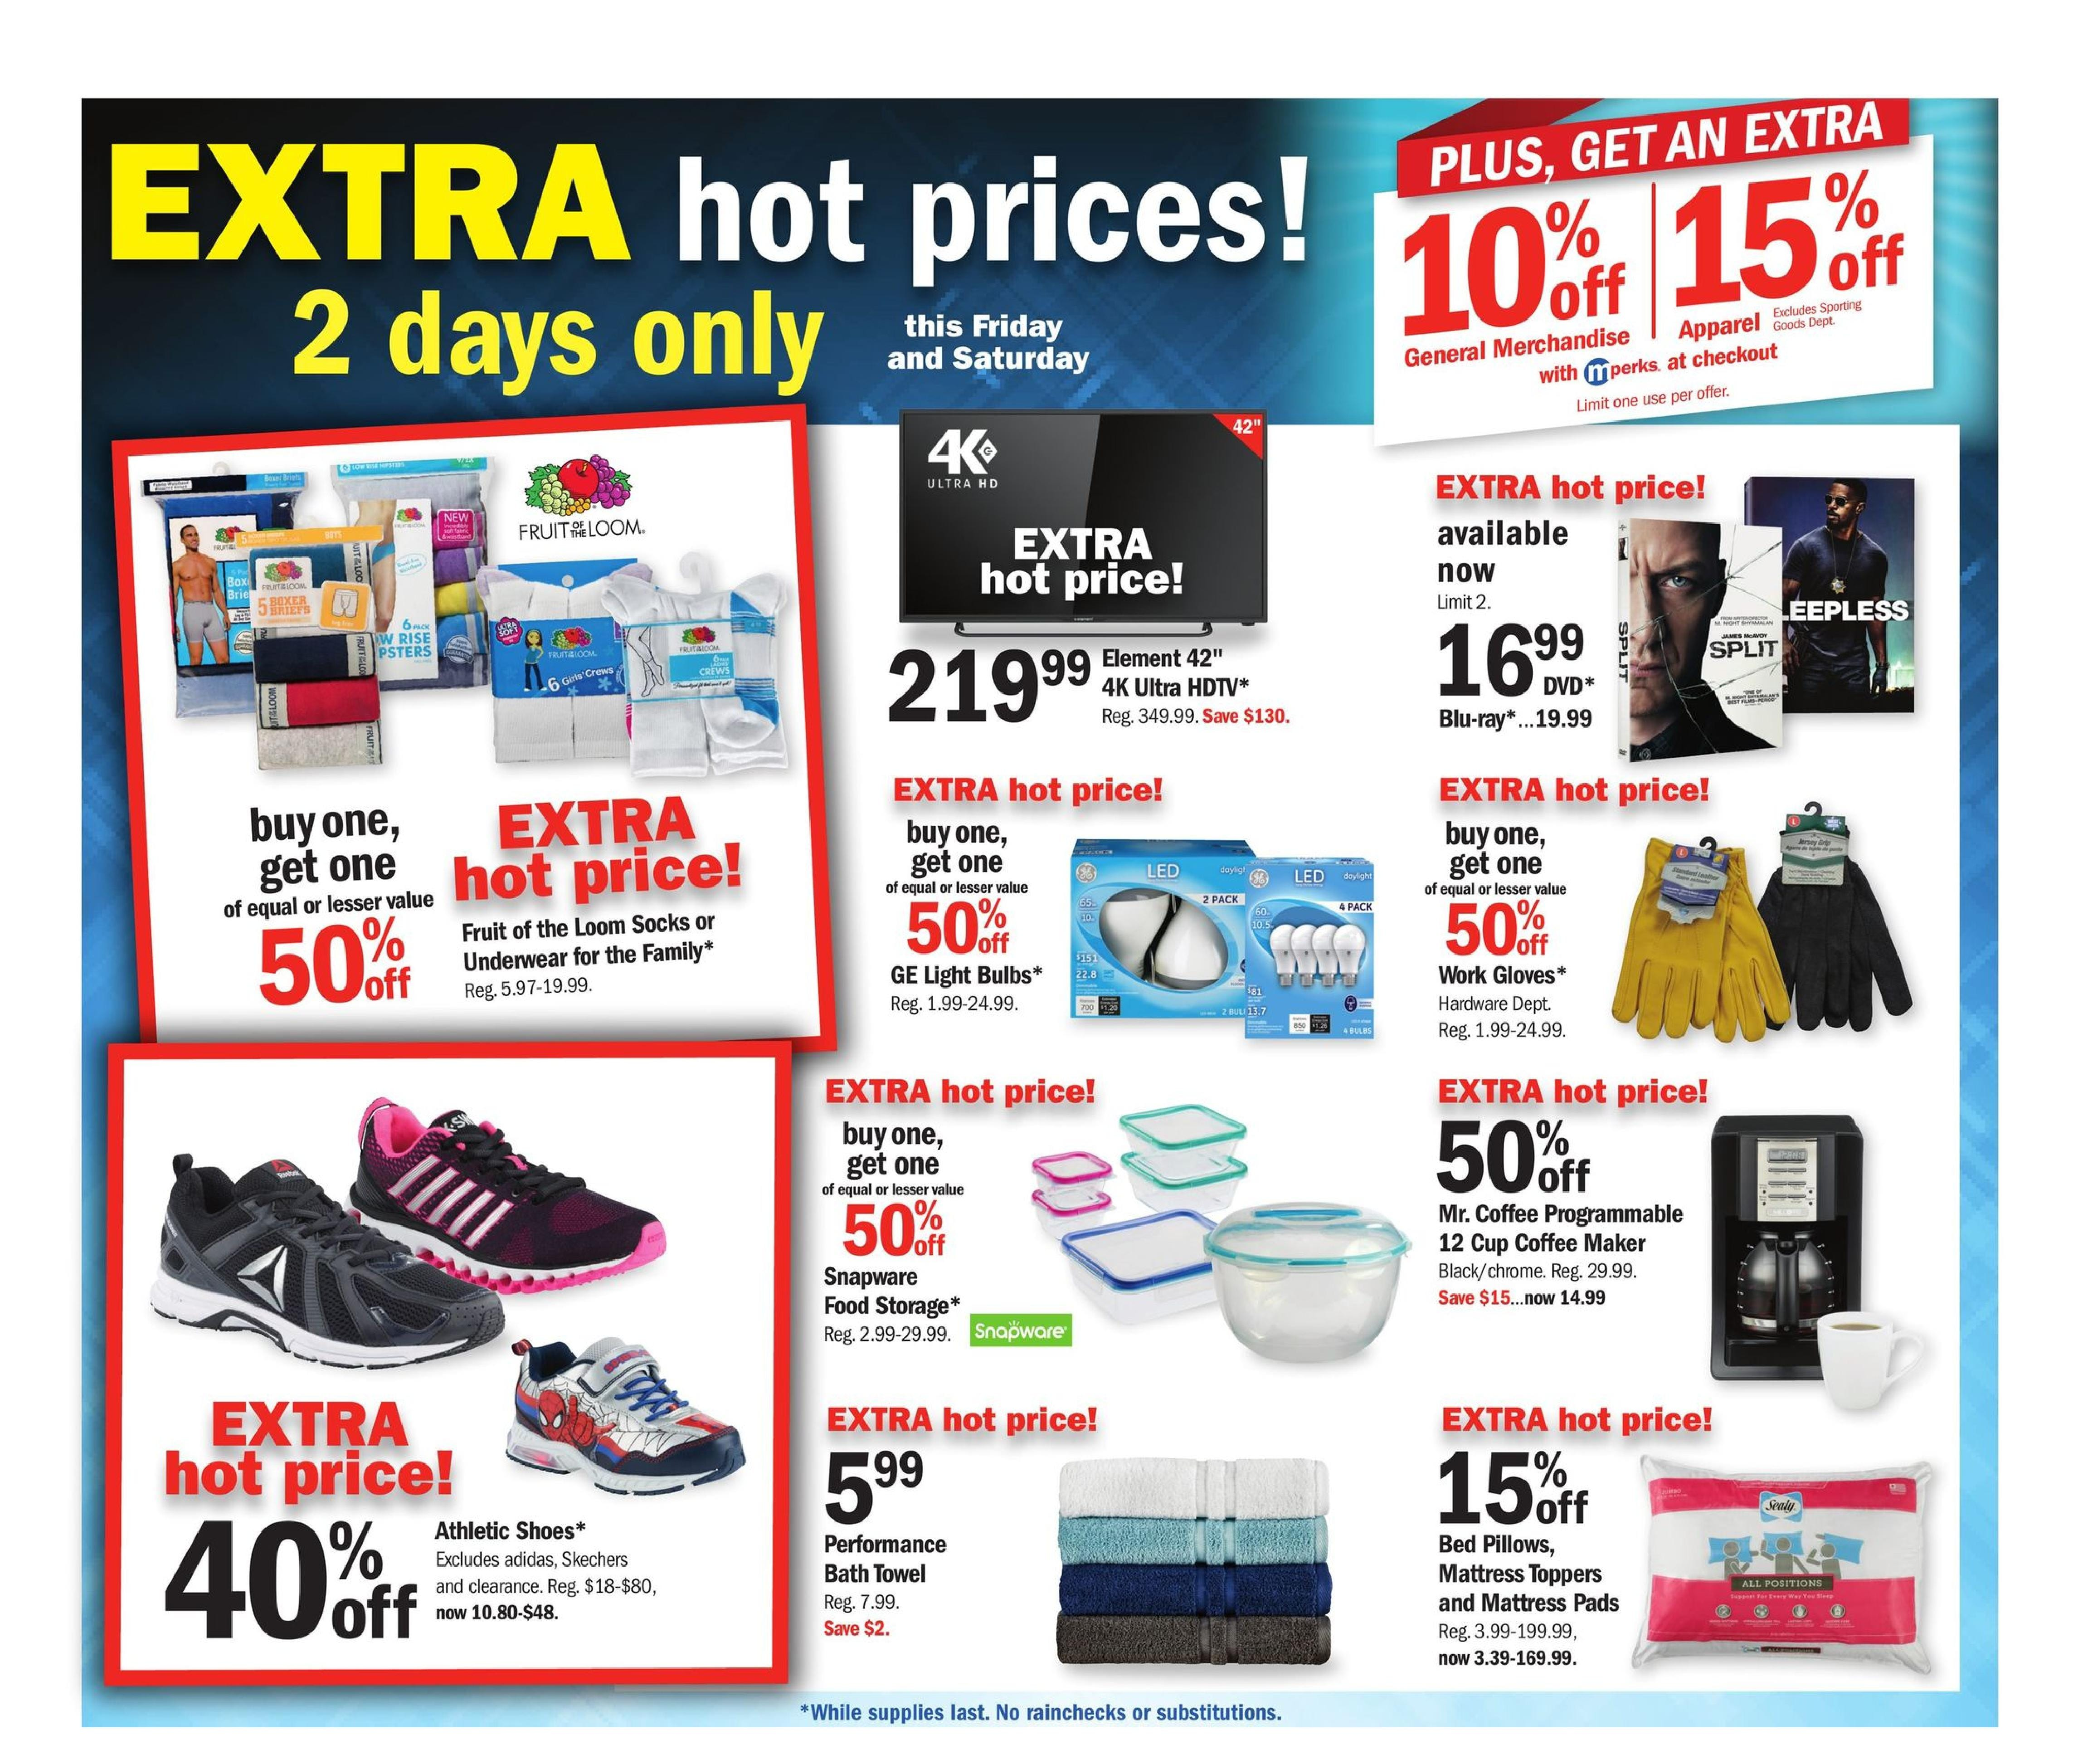 Weekly Ads - Page 399 of 679